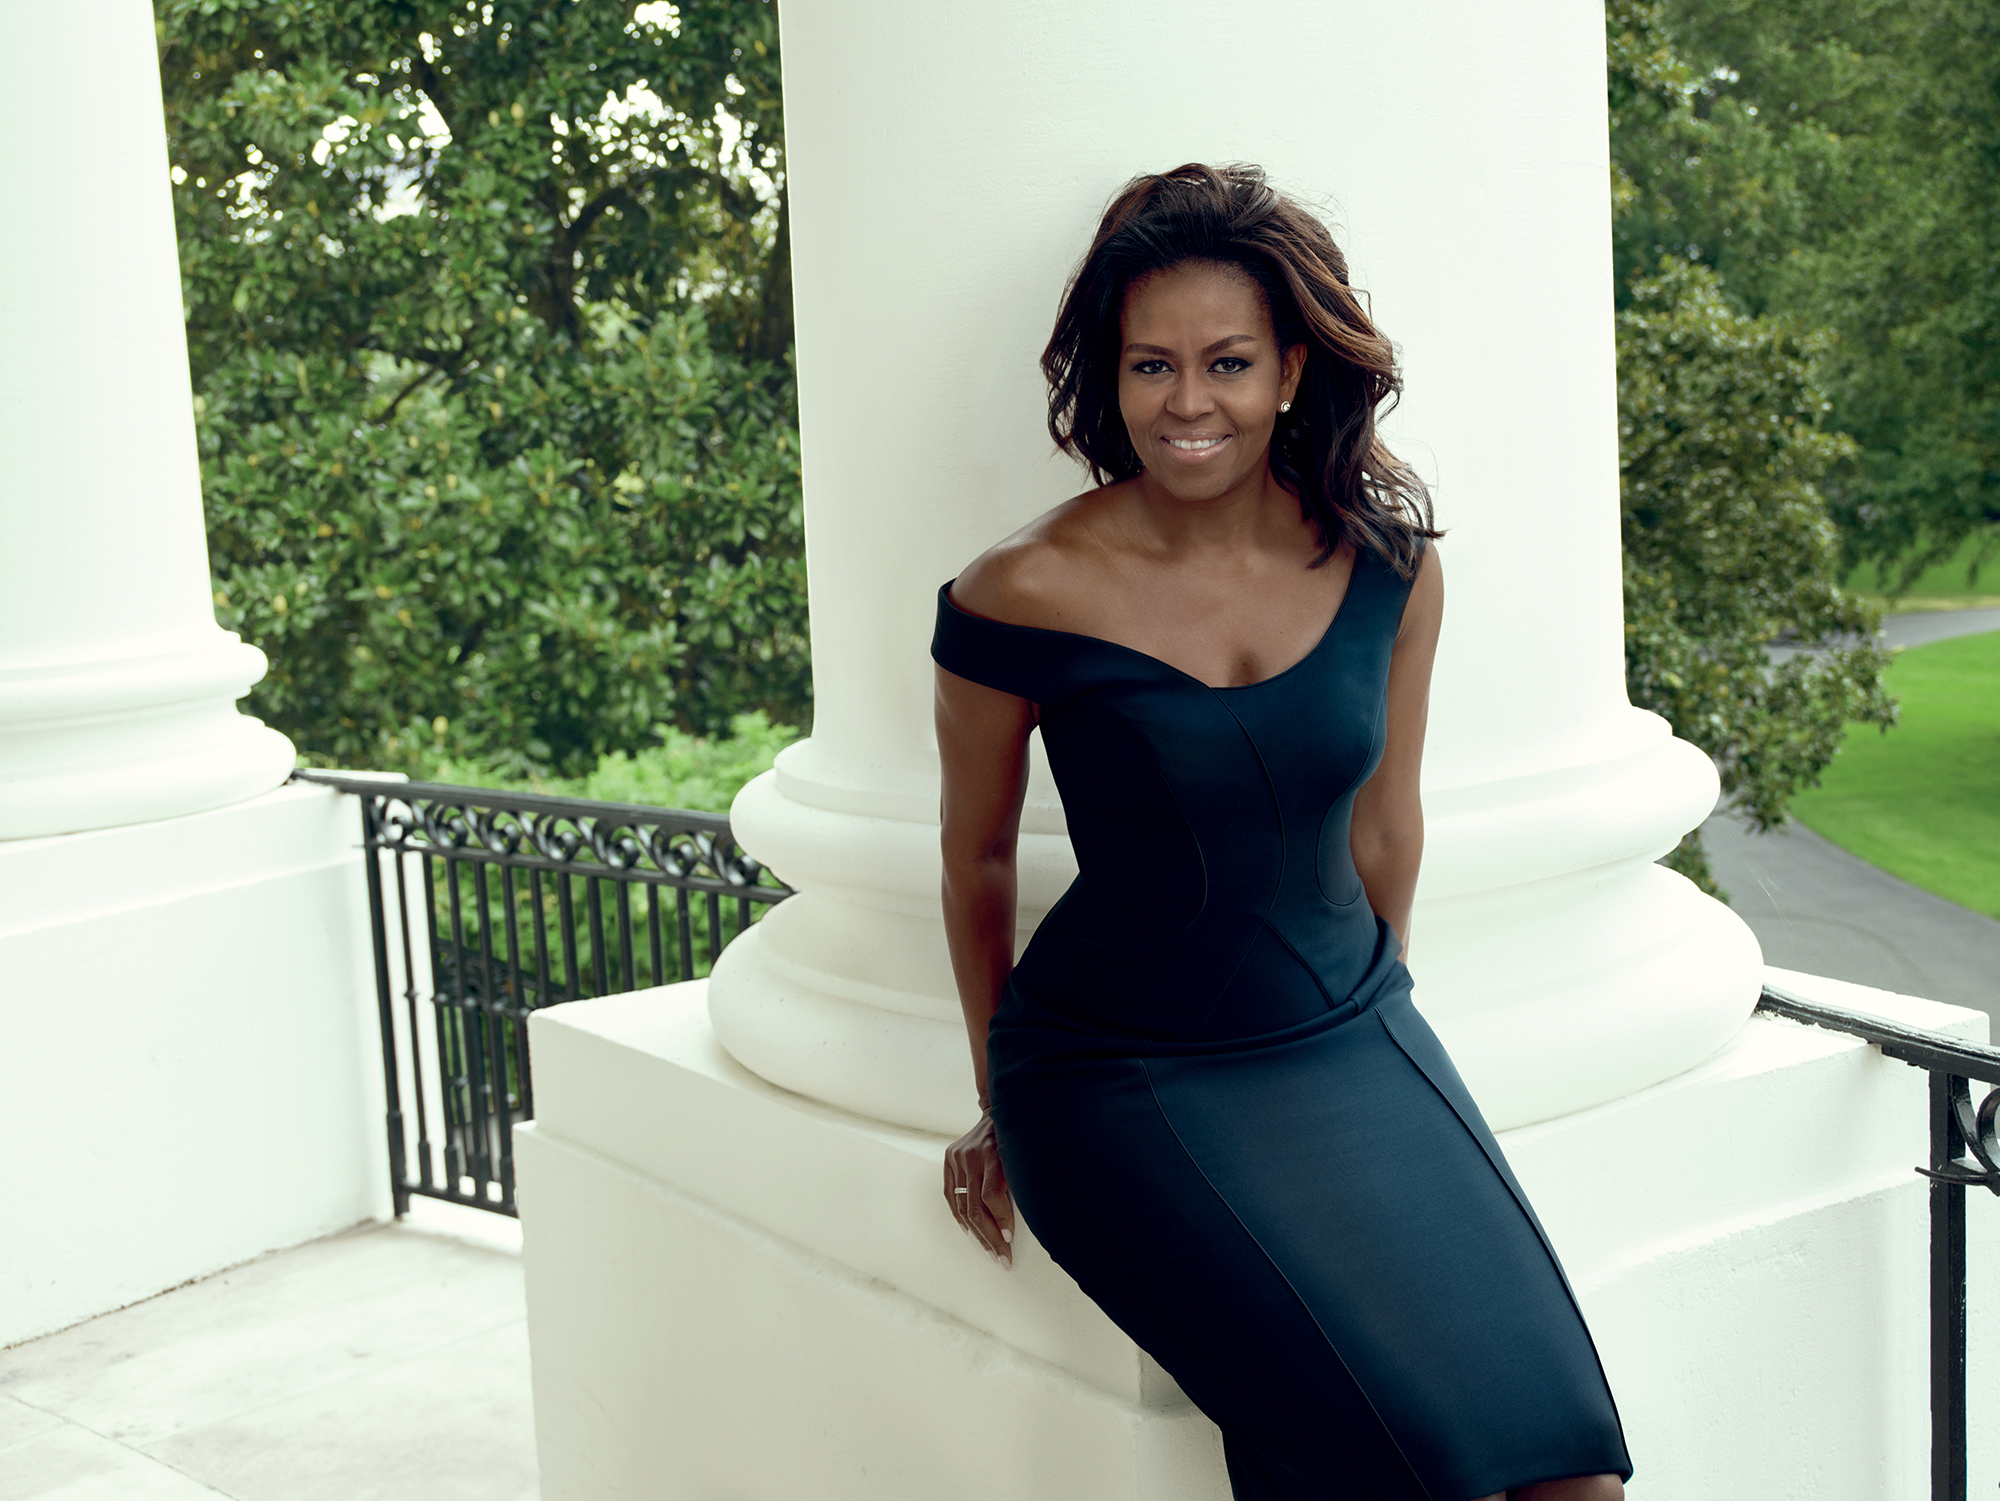 a6093d6110 Forever FLOTUS: Top 10 Michelle Obama Looks - The Urban Play